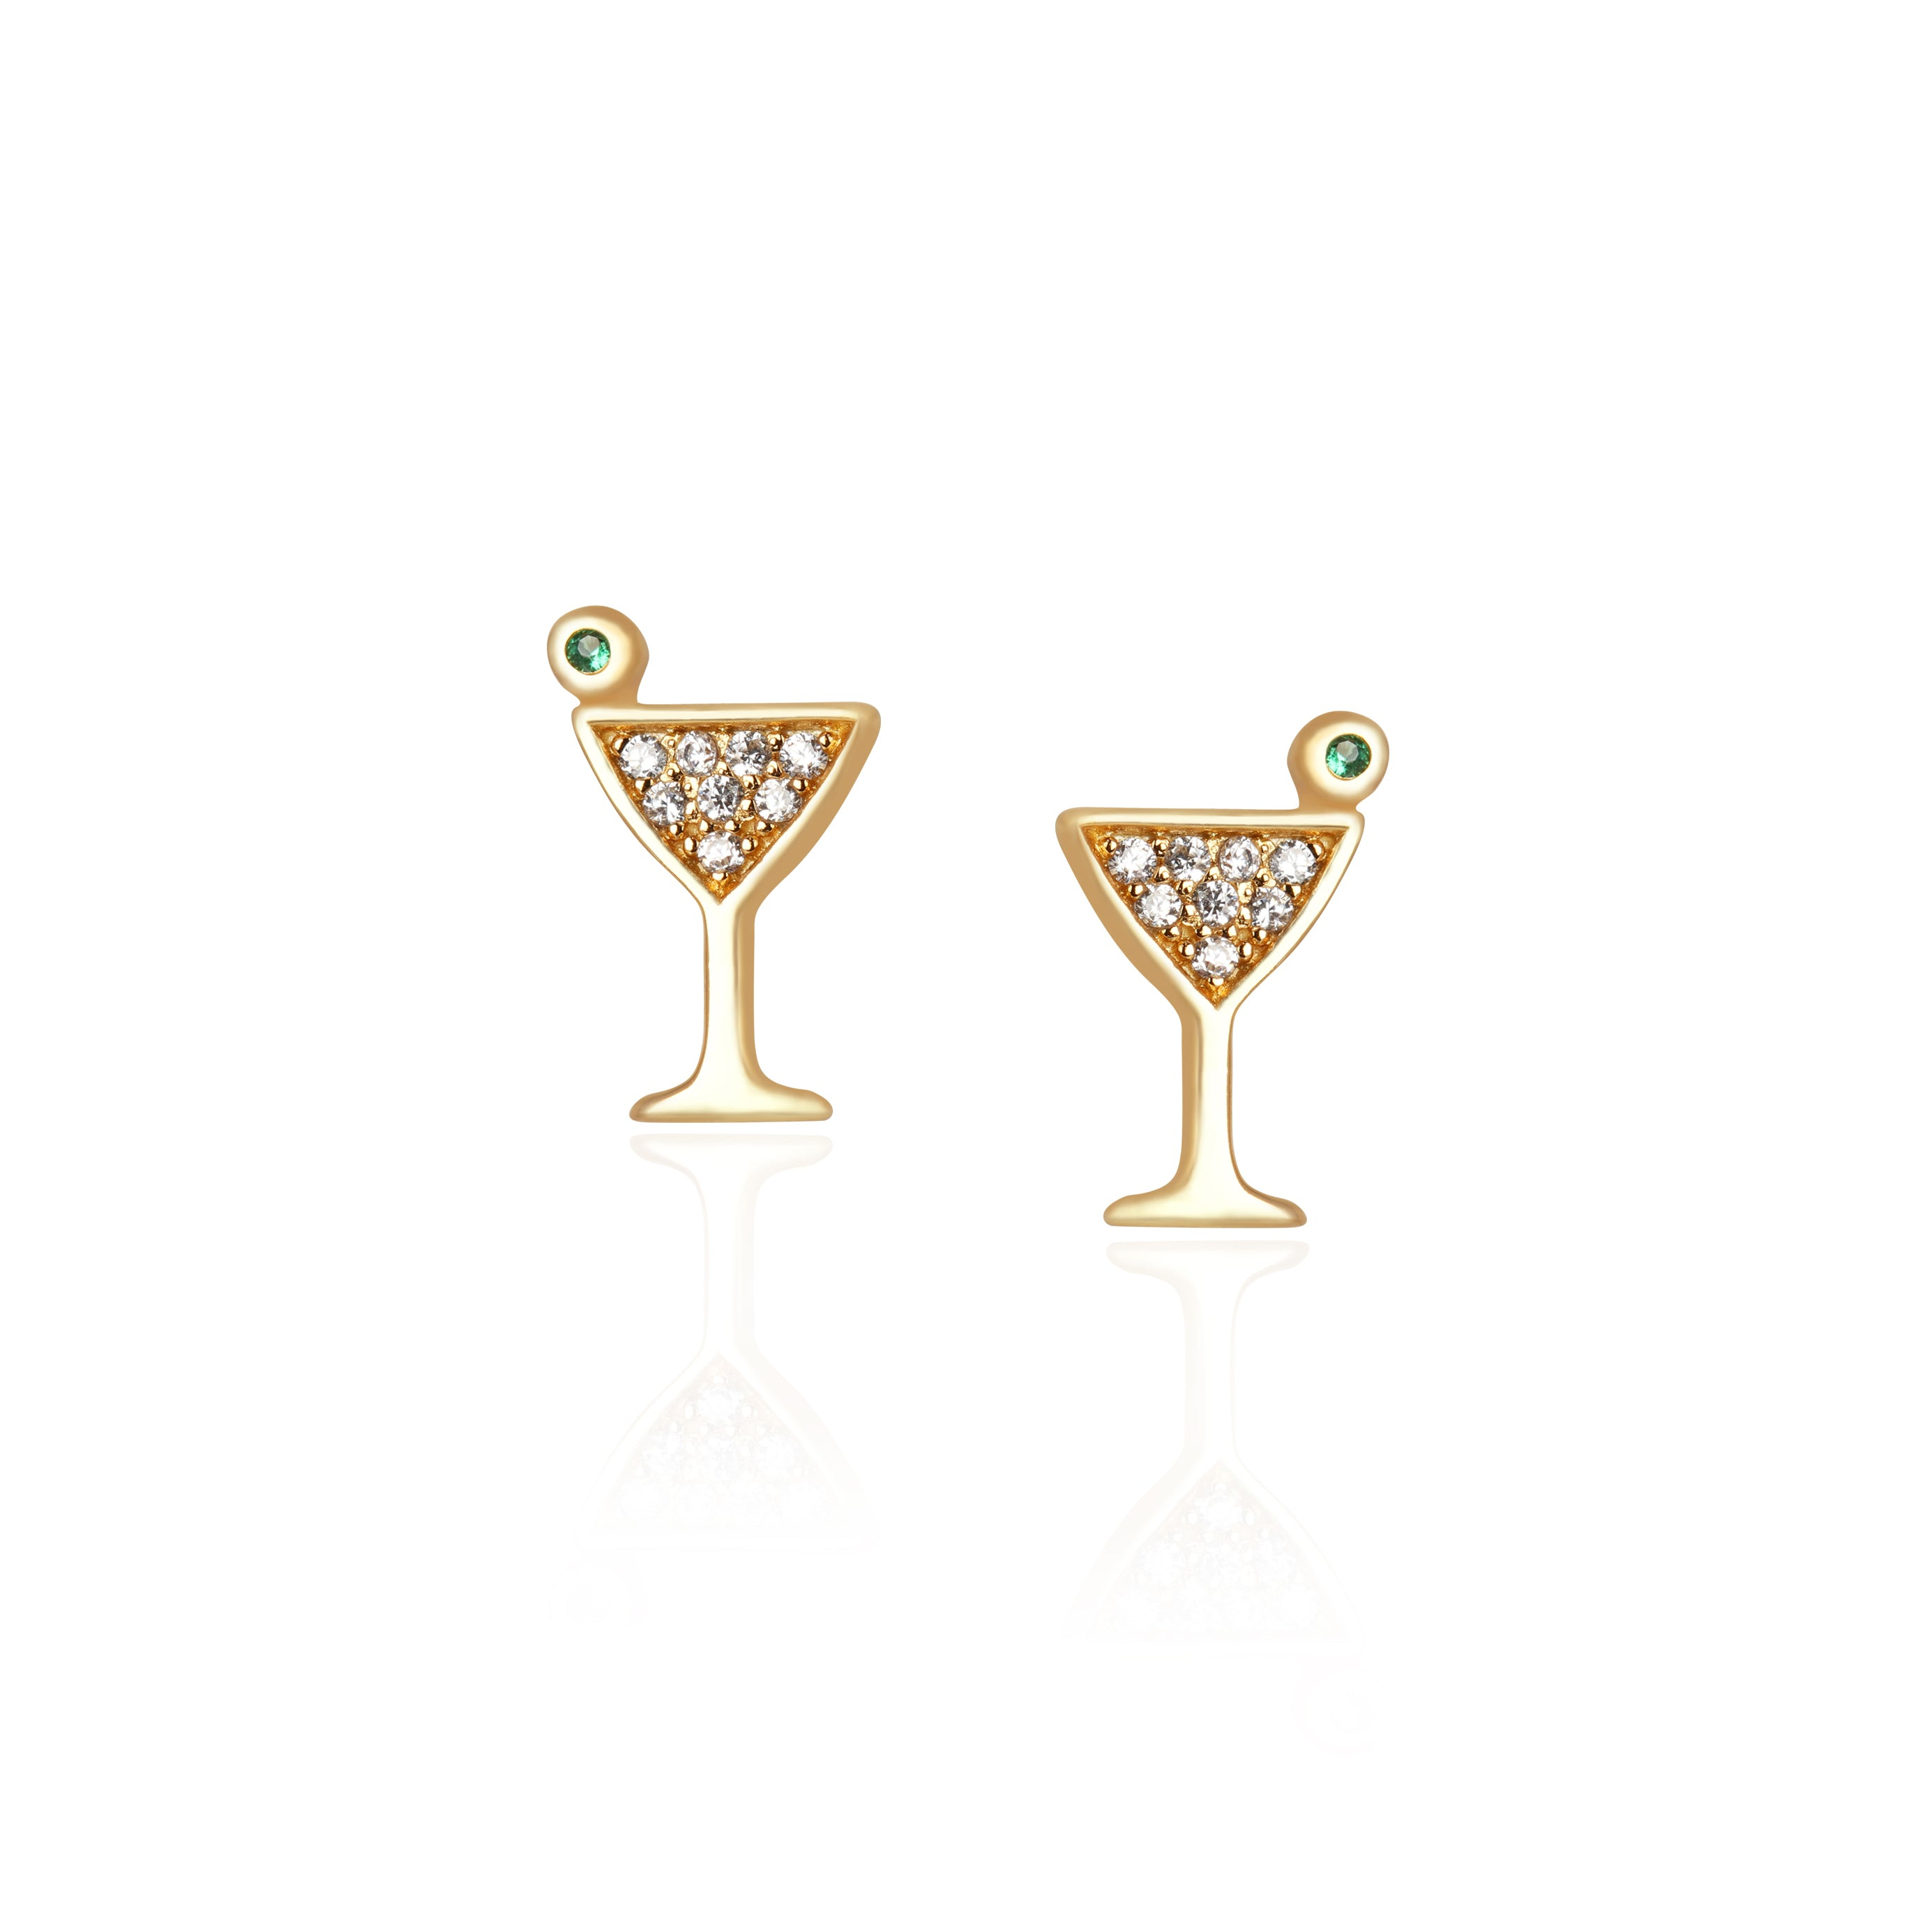 Martini Earrings